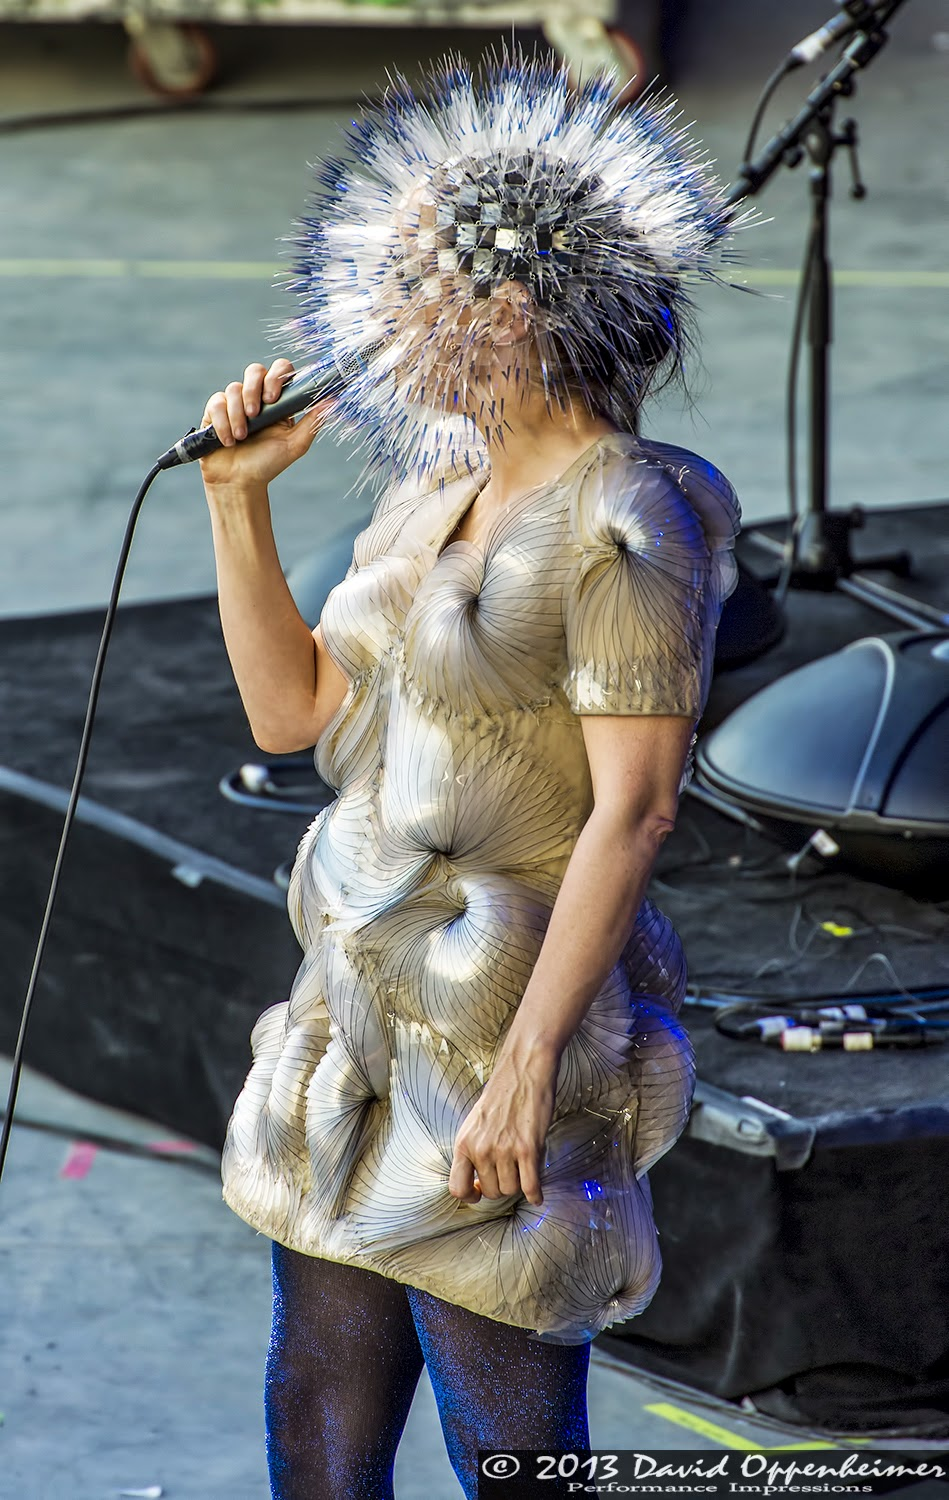 bjork-15-06-2013-bonnaroo-74-david-oppen